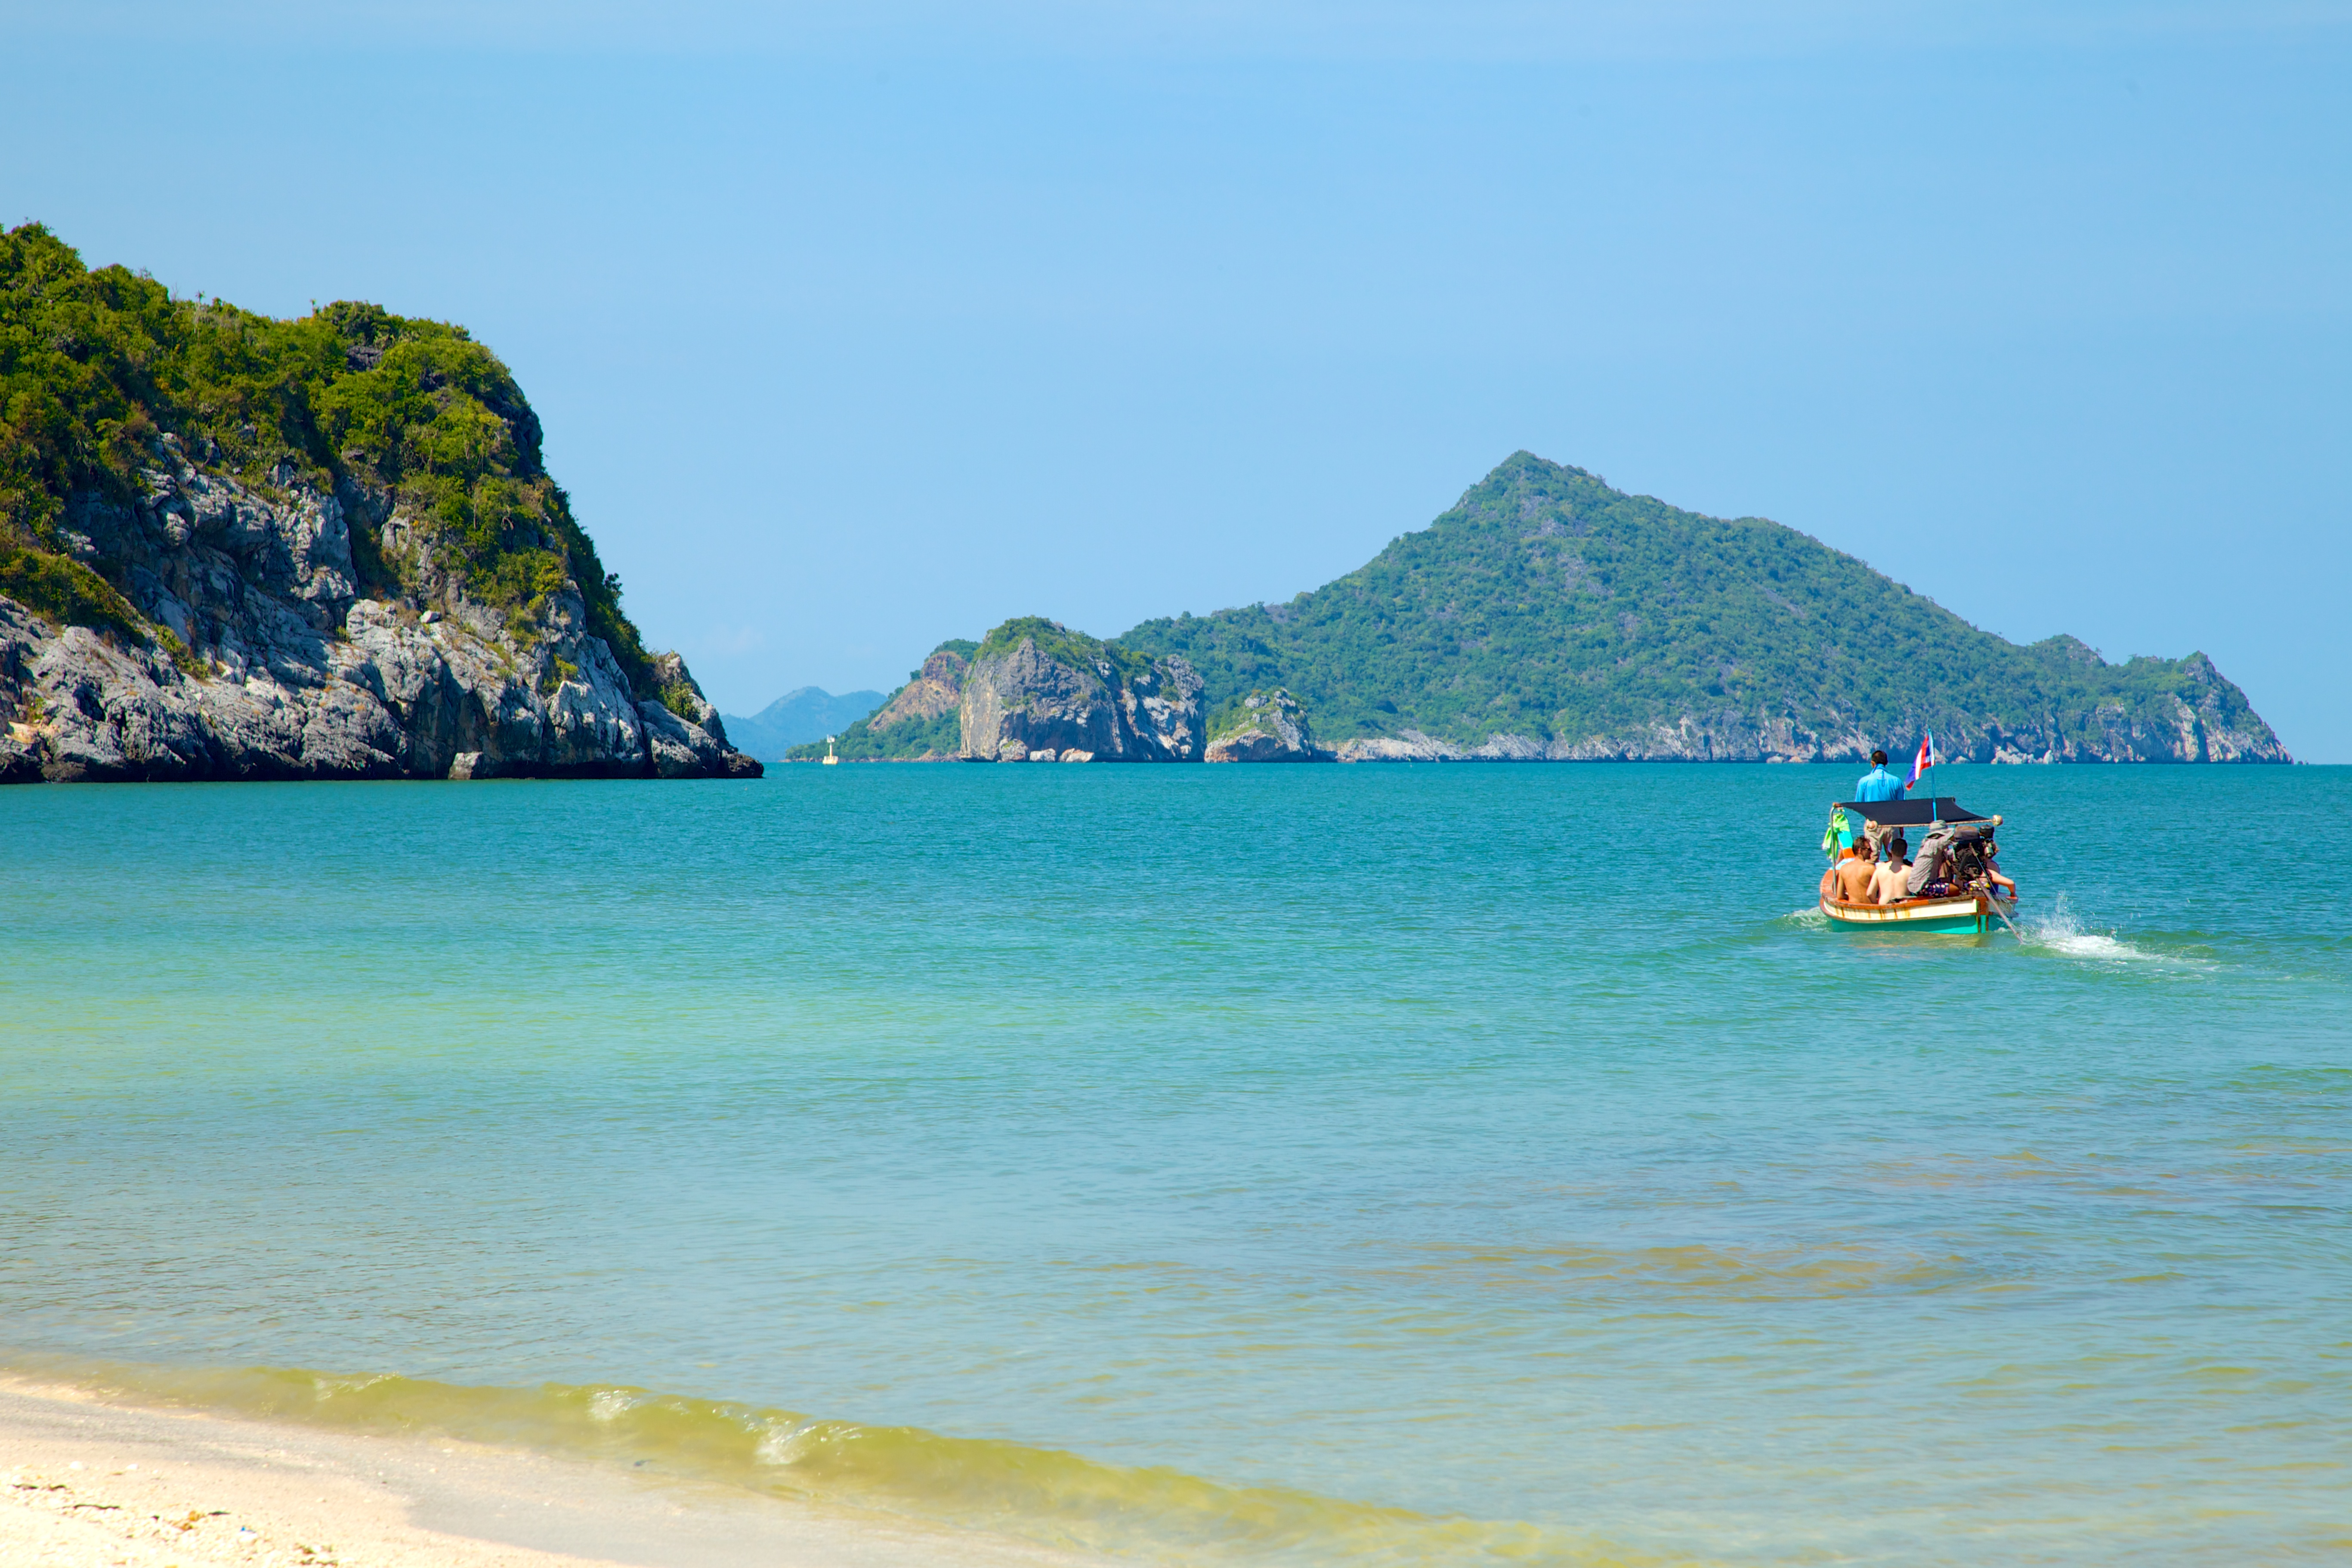 Hua Hin Beach The Gulf Coast Beaches, 5 Thai Beaches to Escape to This Winter - Expedia.ca